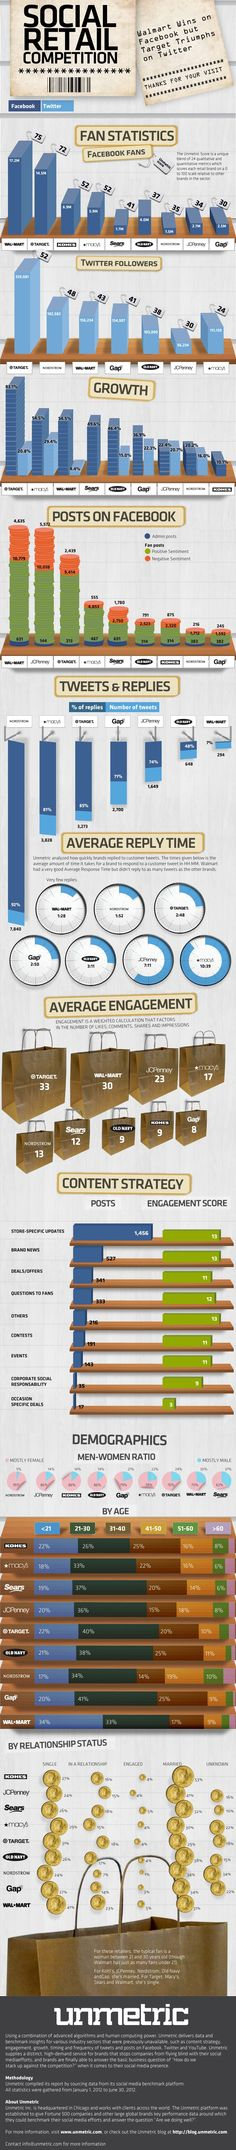 #Social Retail Competition - interesting numbers about the US leaders in this infographic.